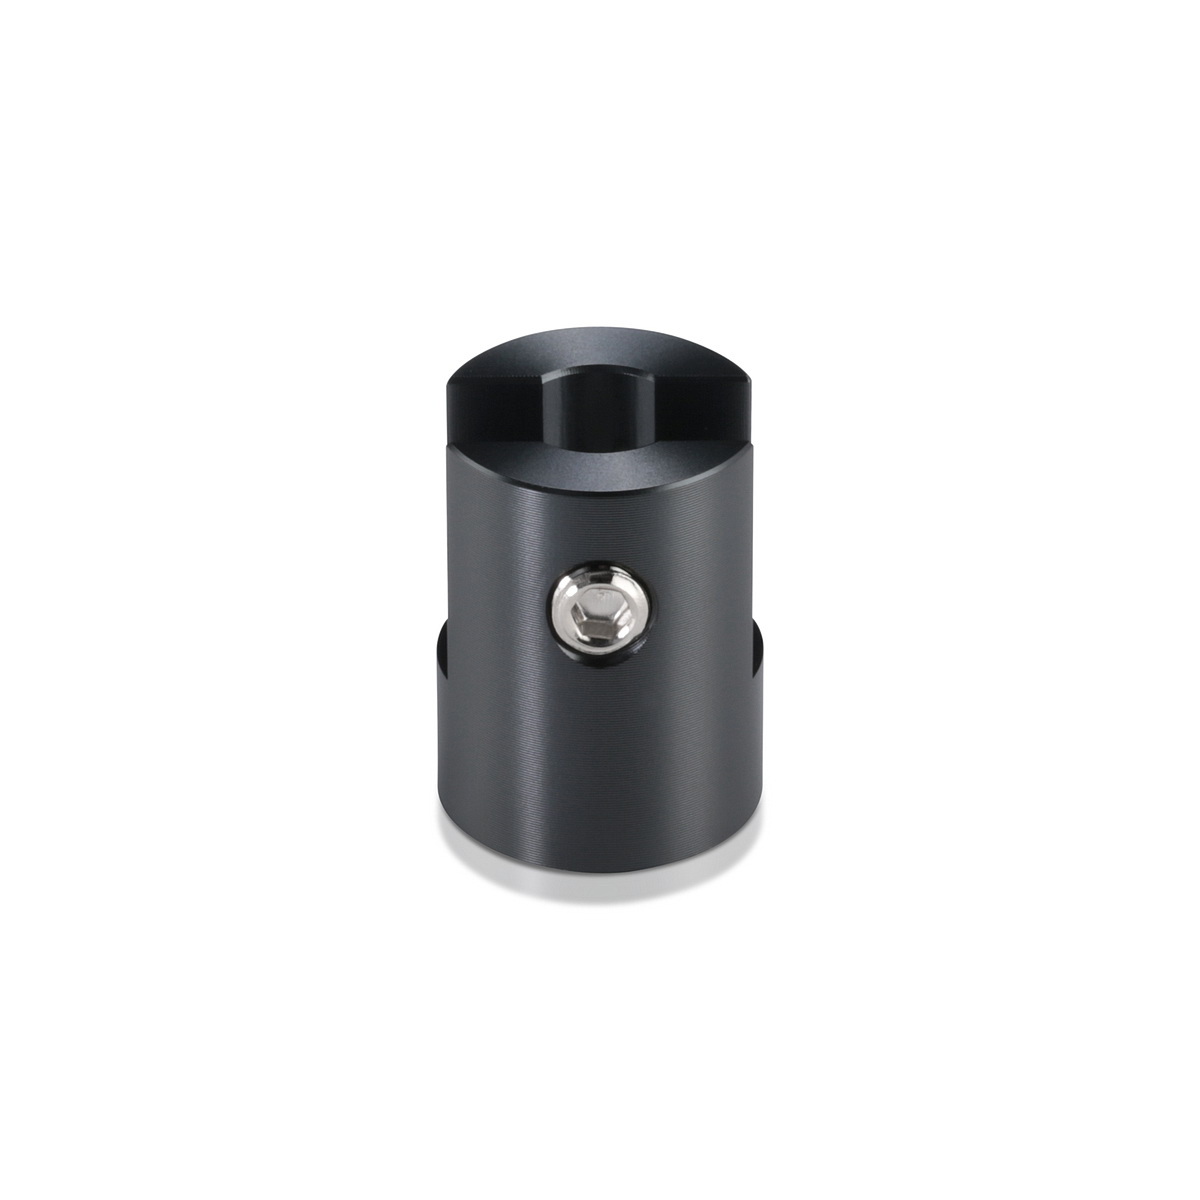 Aluminum Titanium Anodized Finish Projecting Gripper, Holds Up To 1/4'' Material